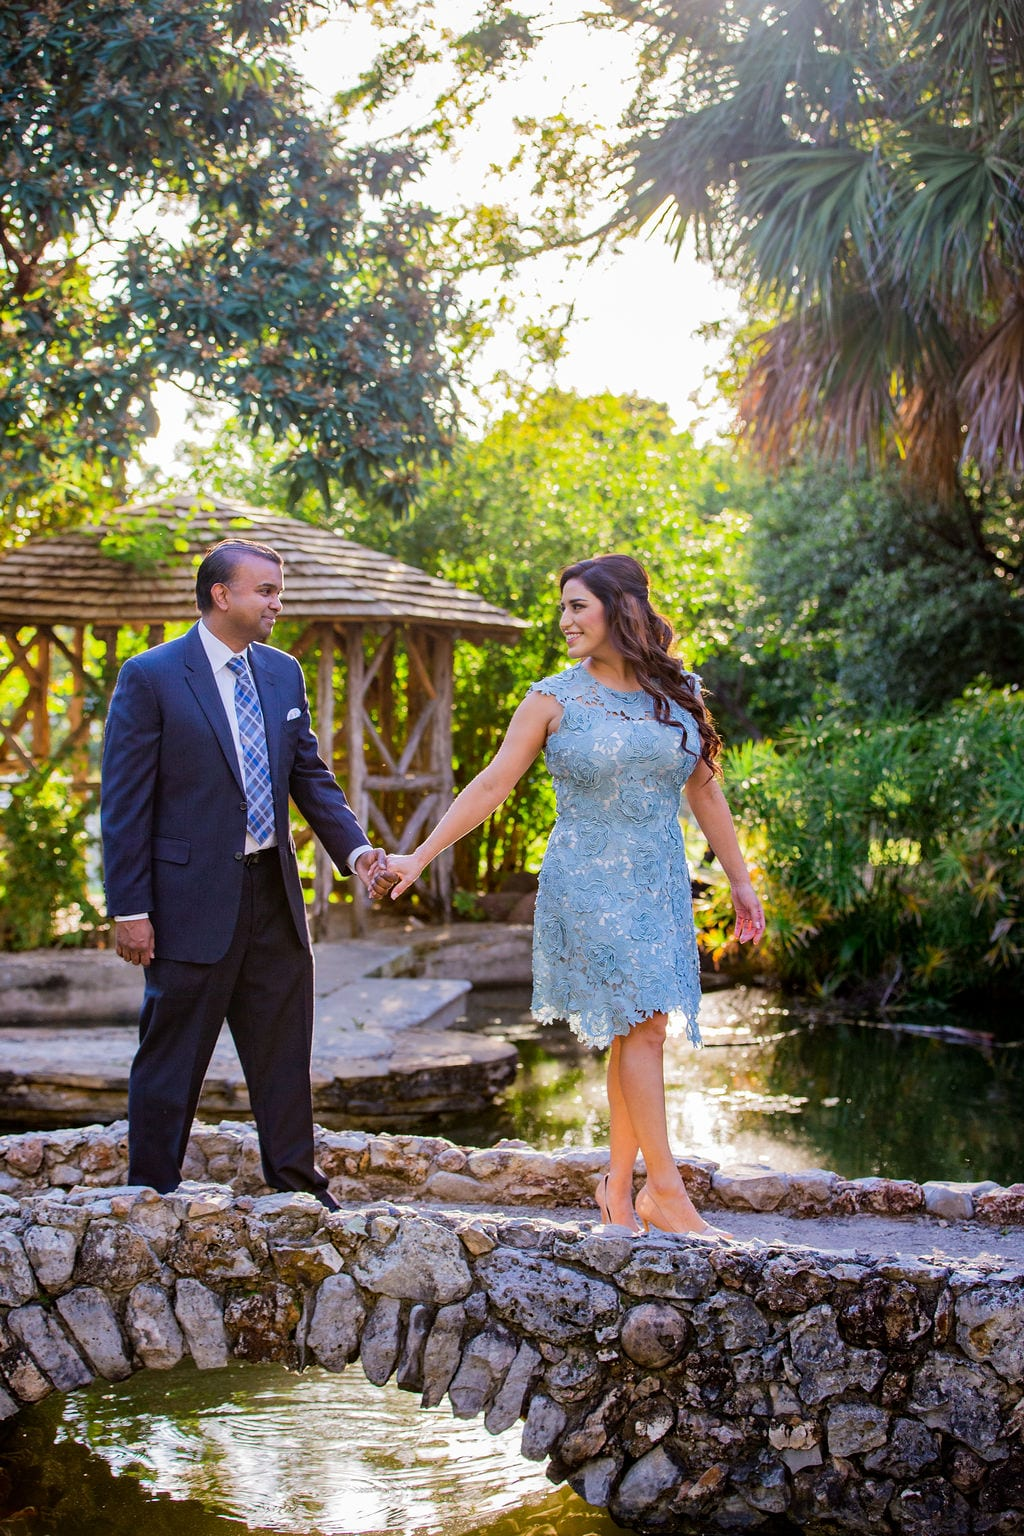 Mary Elizabeth's engagement at the McNay walking on the bridge